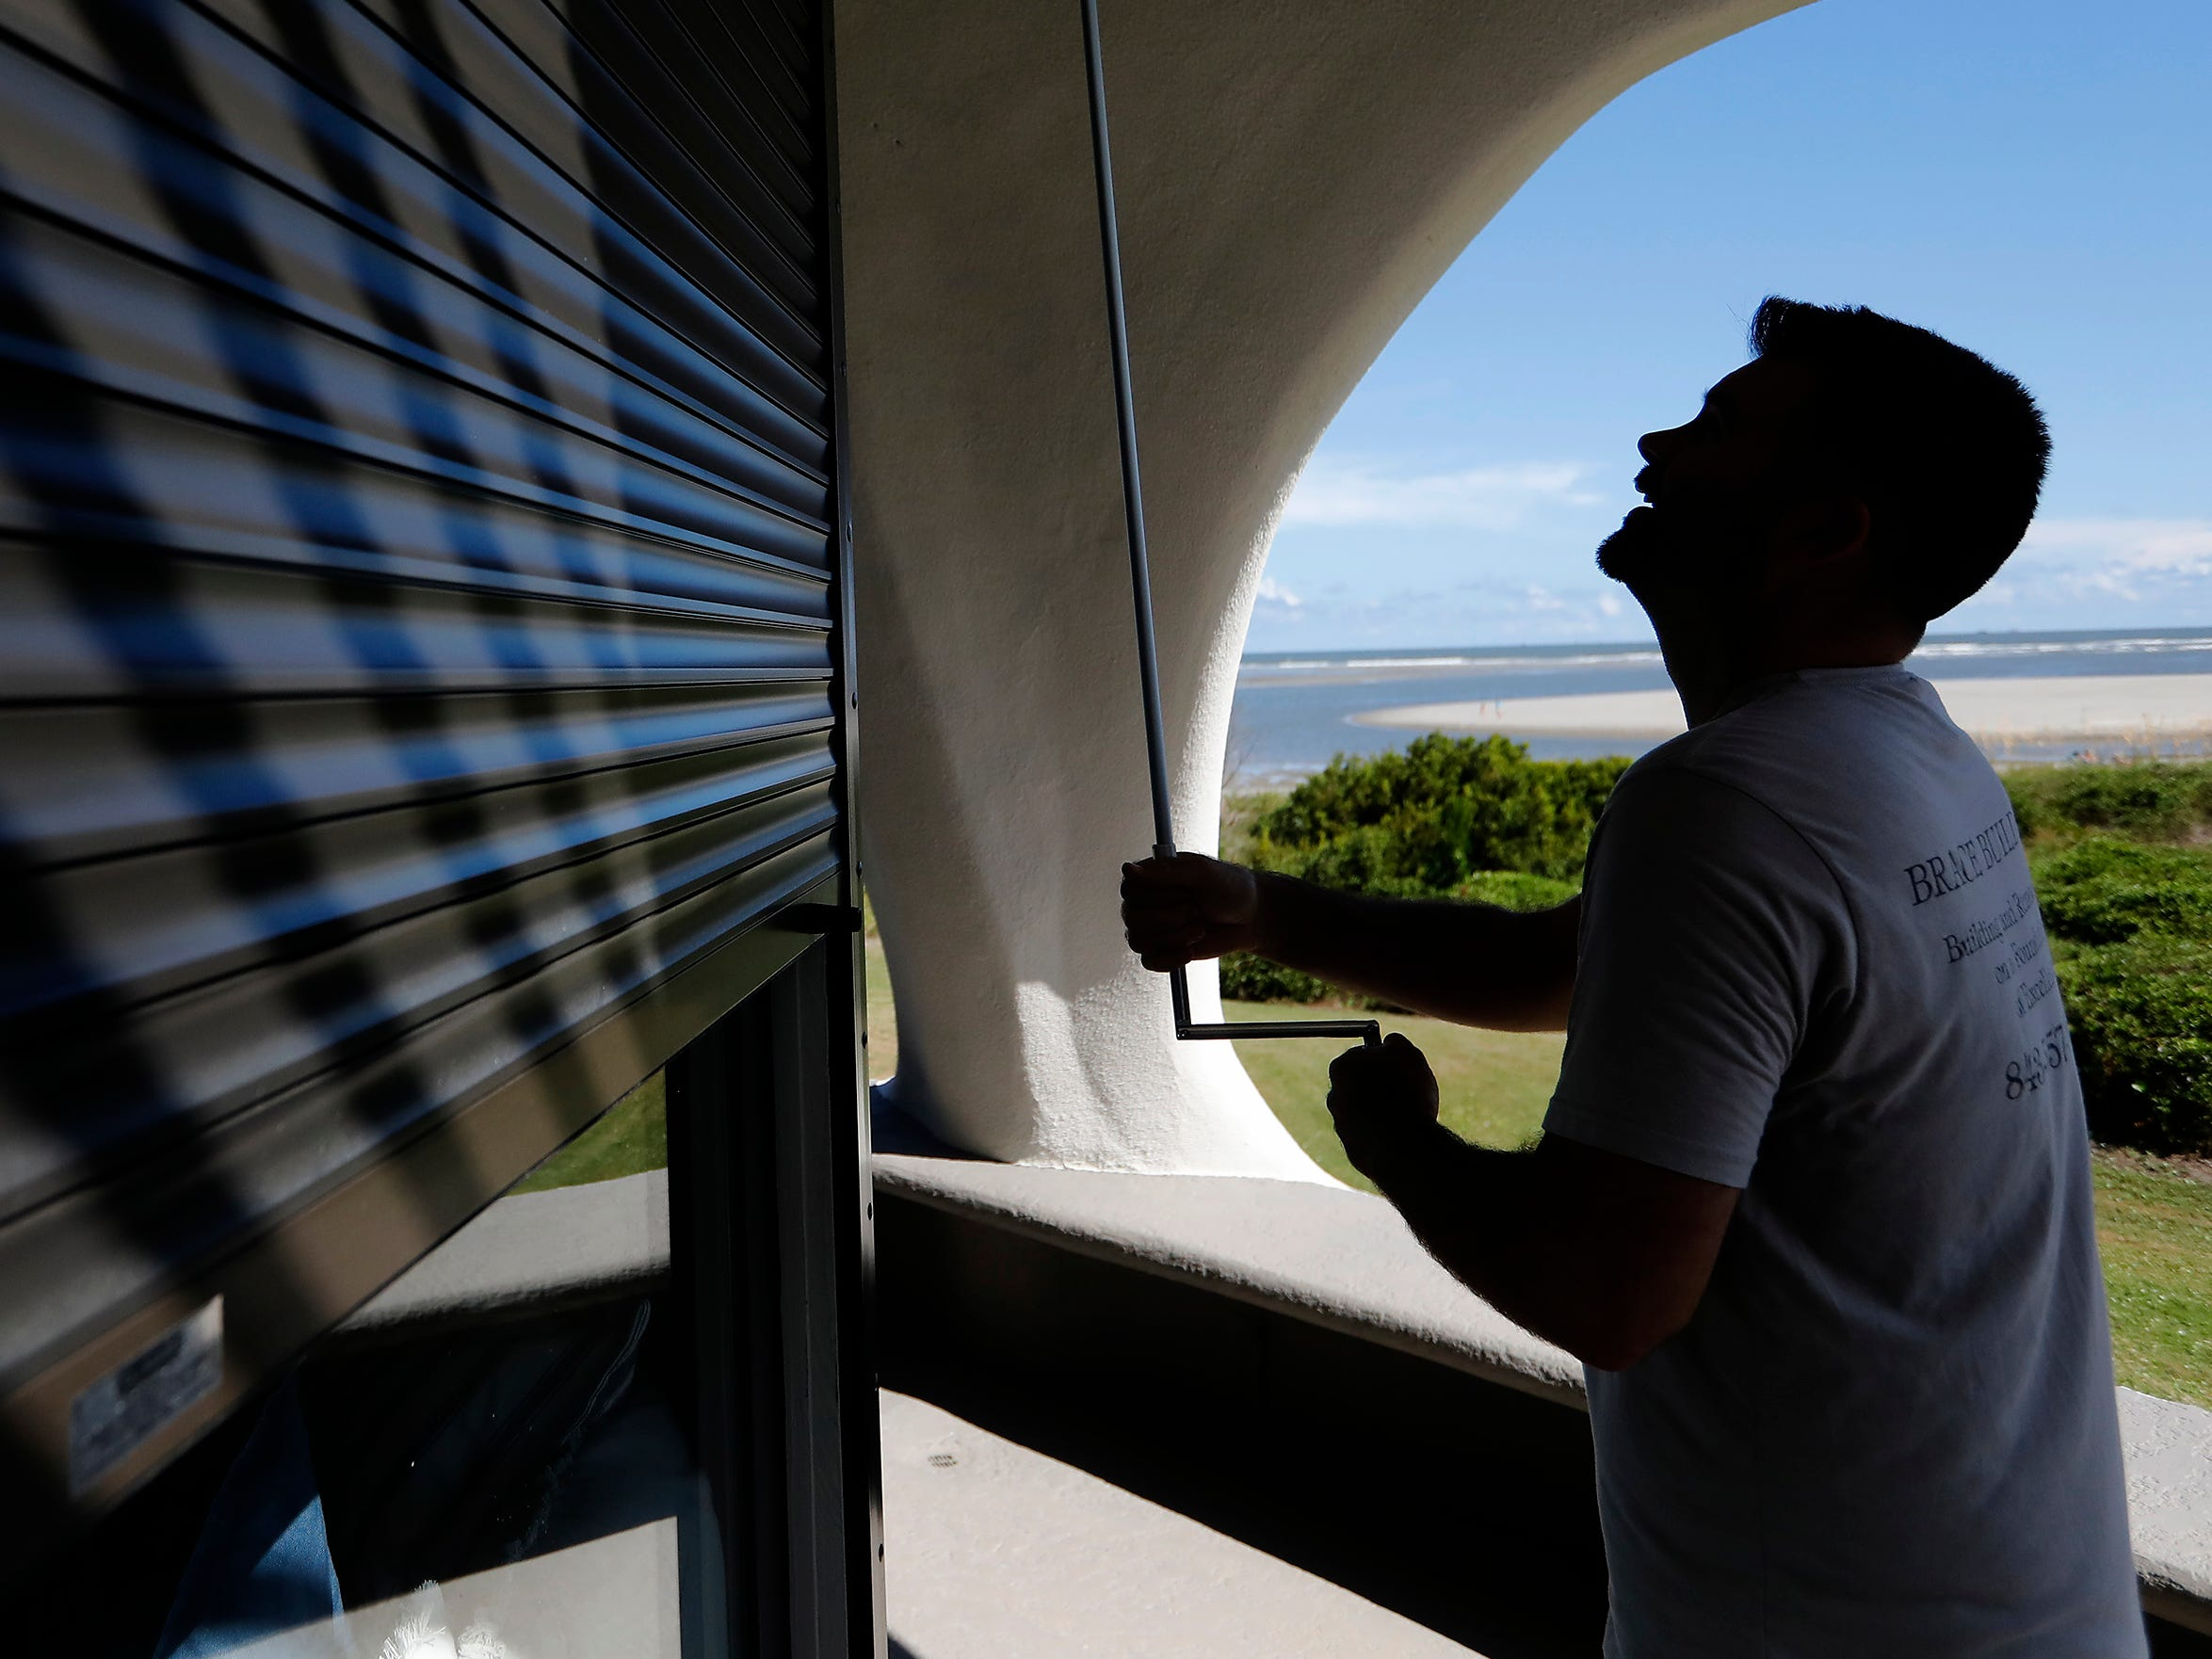 Chris Brace, from Charleston, S.C. lowers hurricane shutters on a client's house in preparation for Hurricane Florence at Sullivan's Island, S.C., Monday, Sept. 10, 2018. Brace said that after S.C. Gov. Henry McMaster ordered an evacuation the property owner asked for the house to be boarded up.